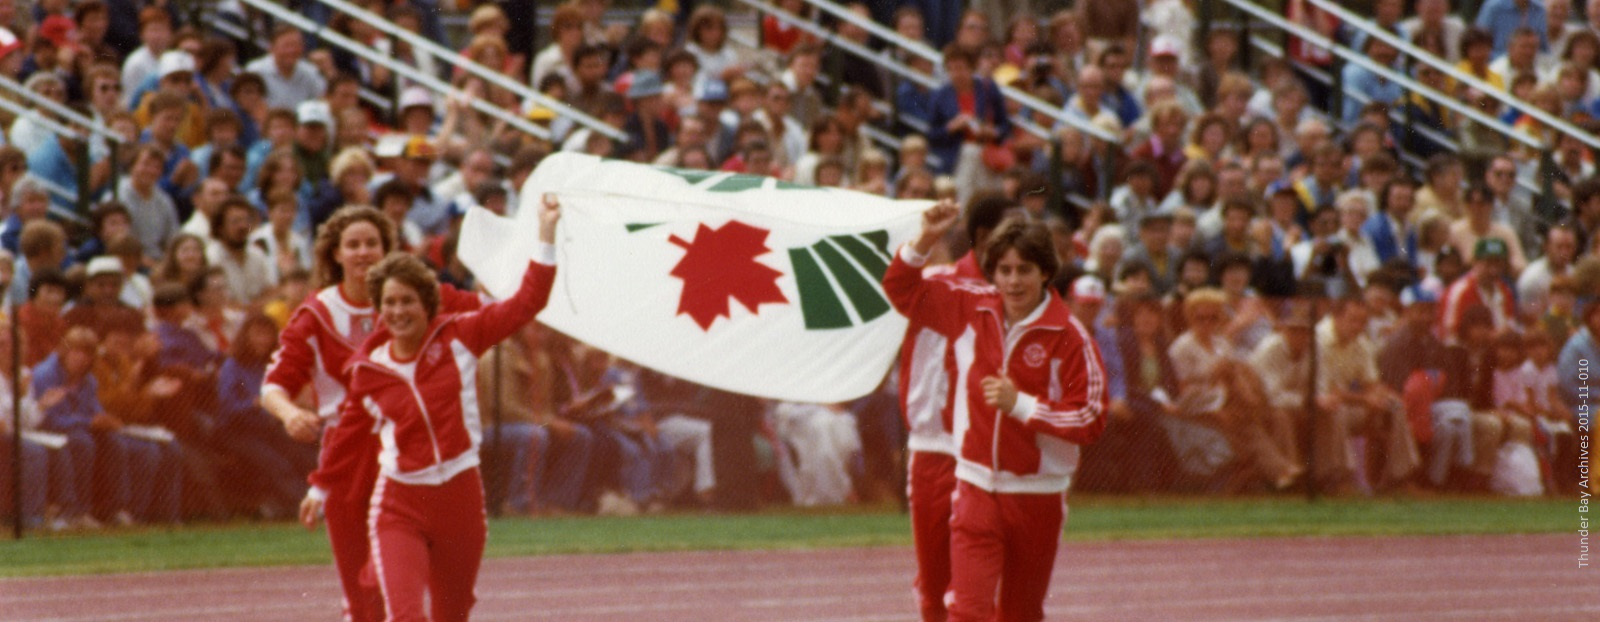 A group of athletes wearing red run with a flag held between the lead pair